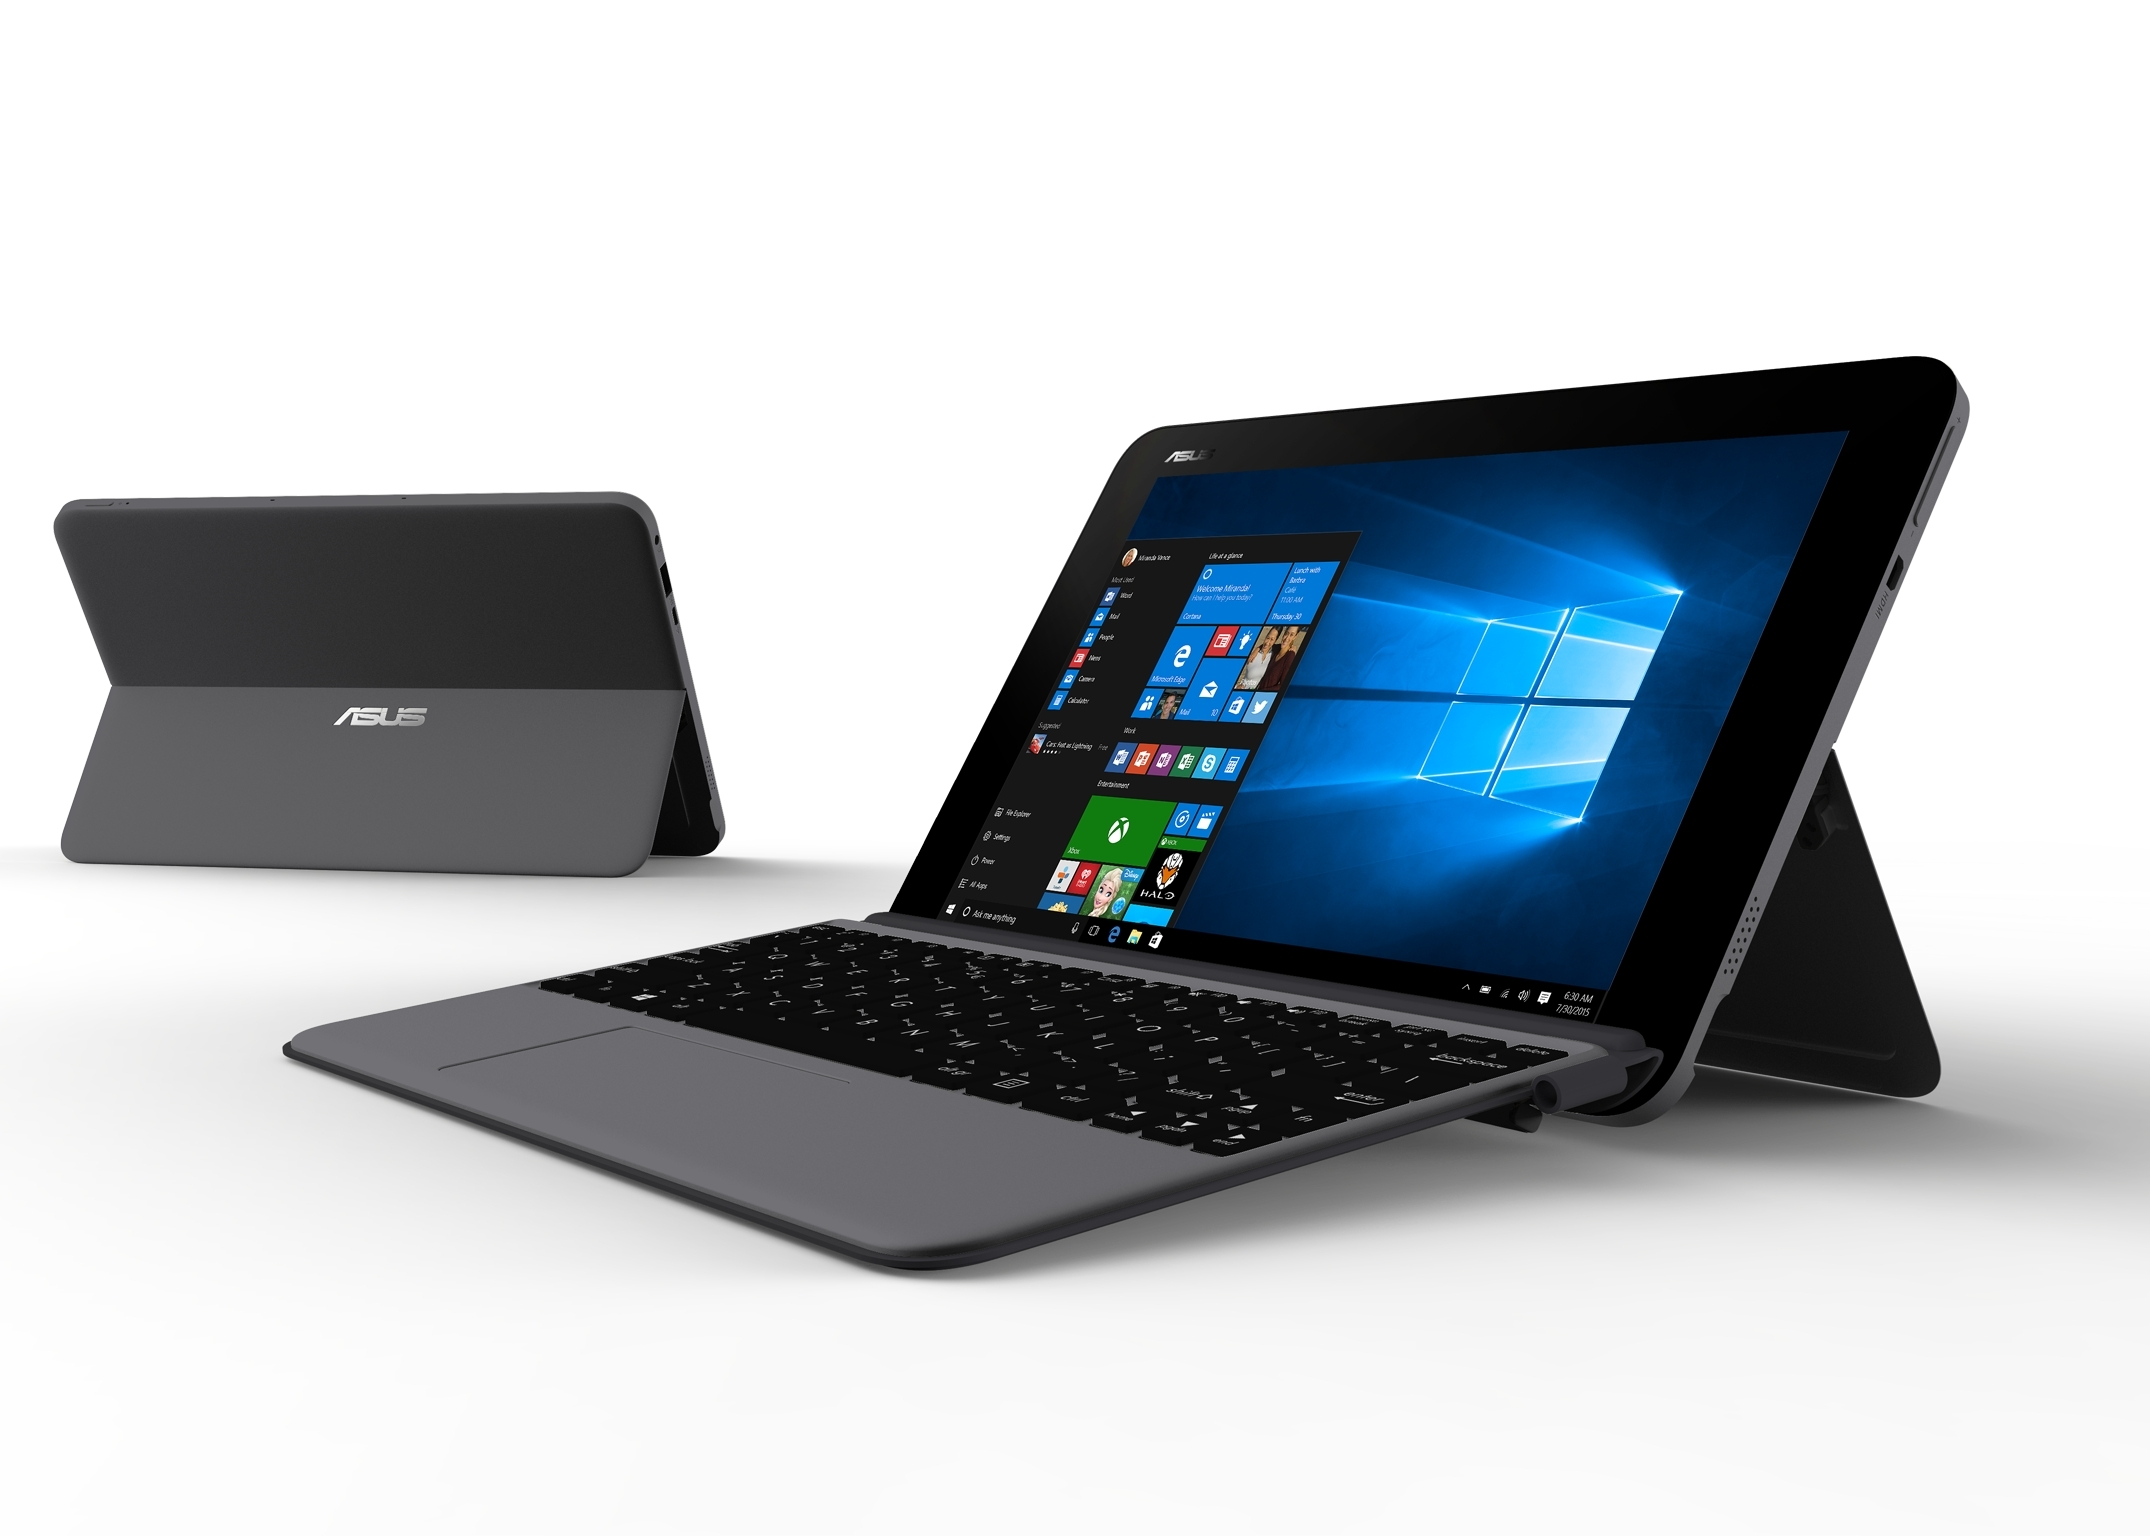 Asus Selects OT-Morpho's eSIM for the First Microsoft